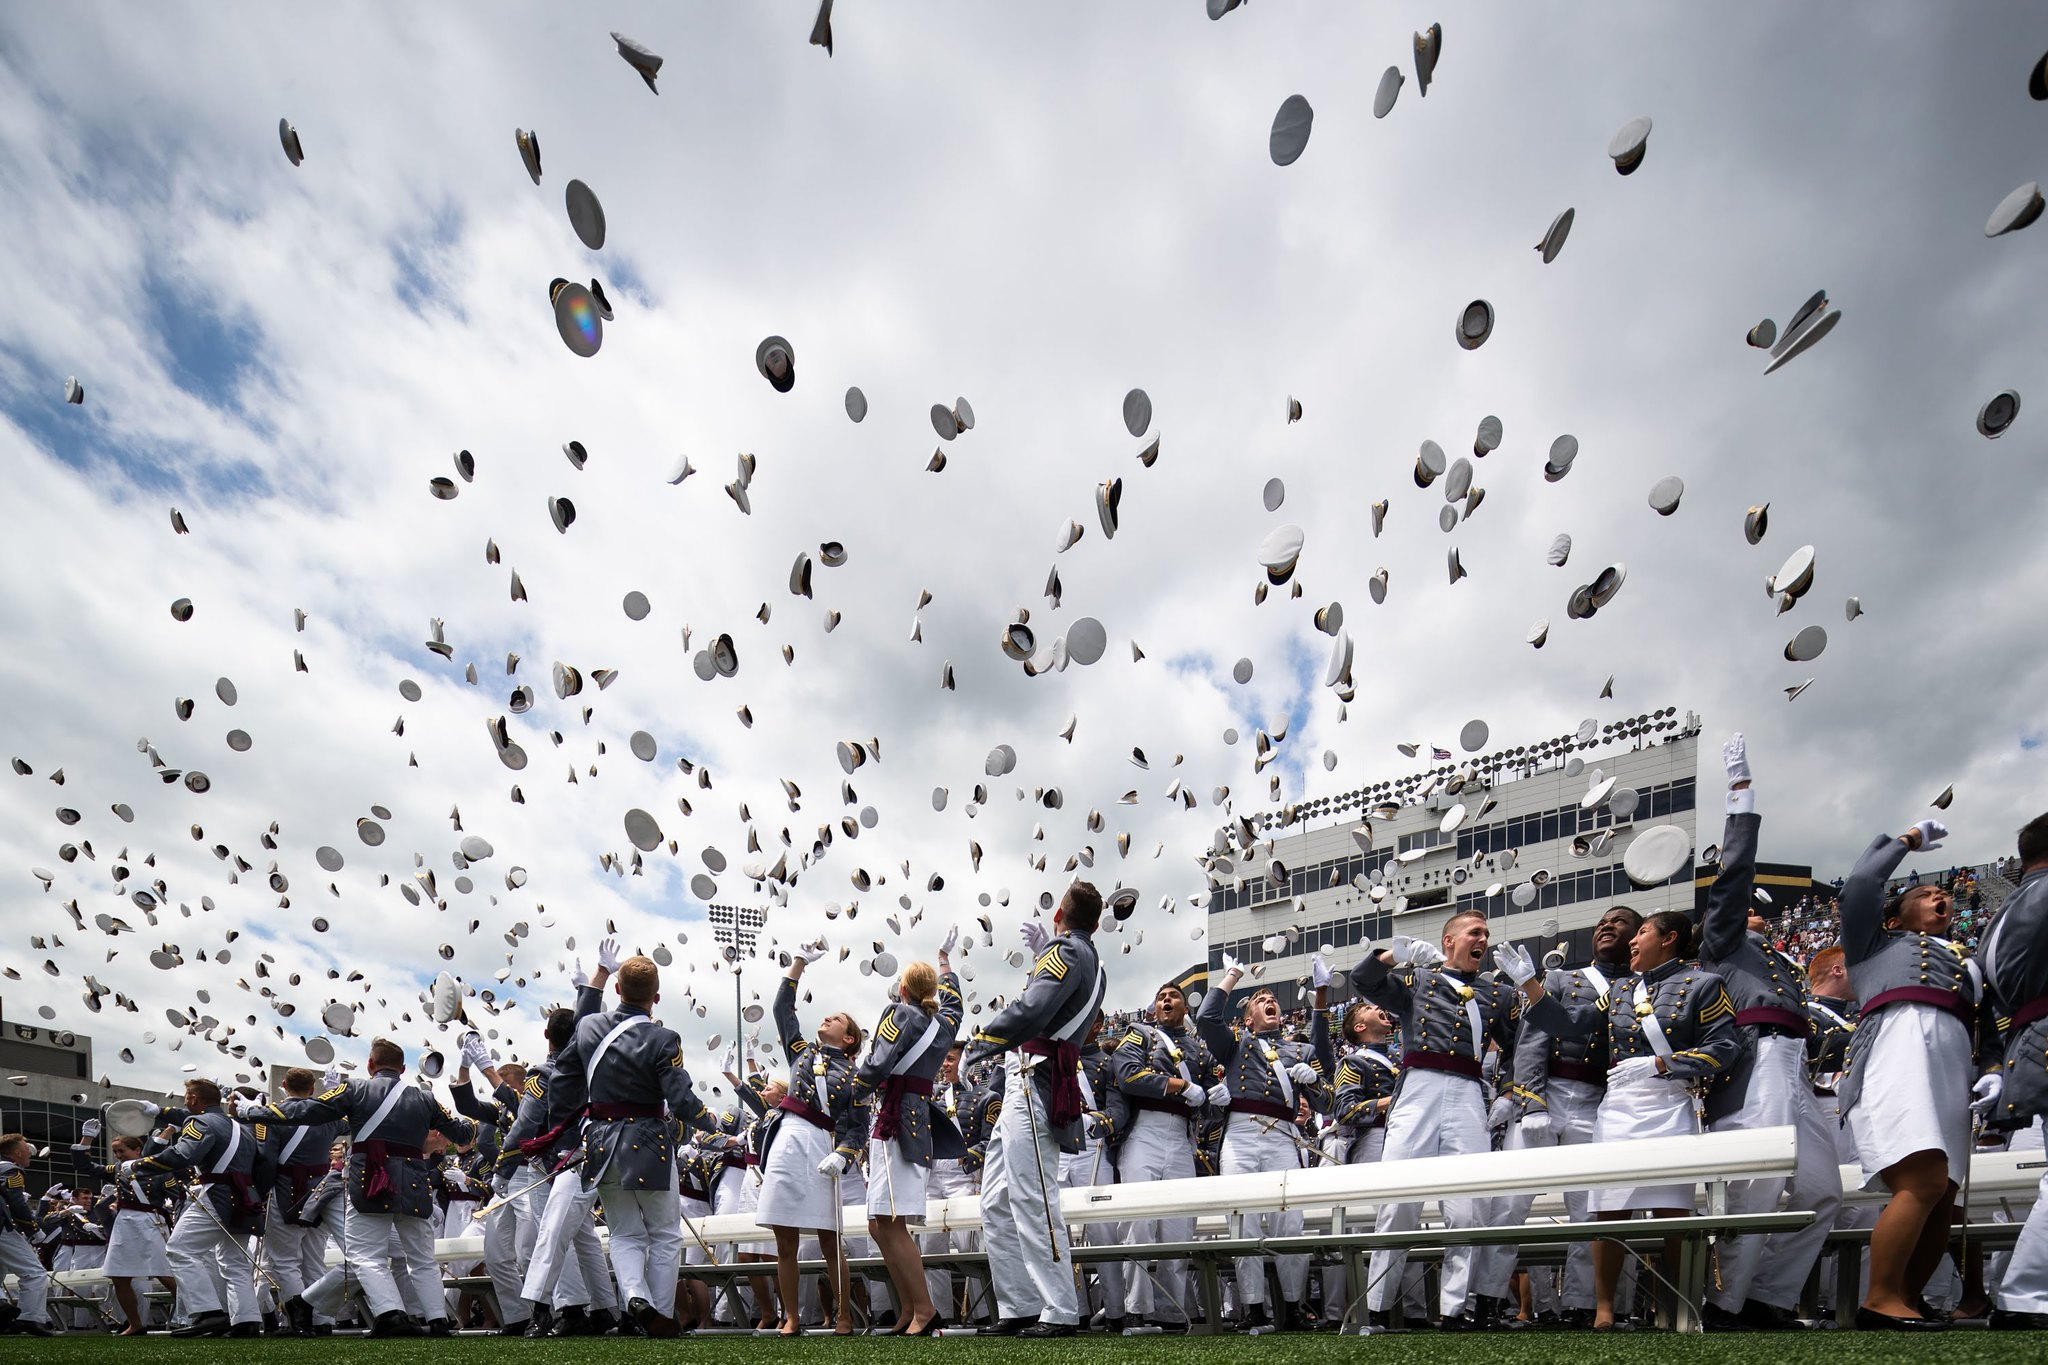 The U.S. Military Academy at West Point held its graduation and commissioning ceremony for the Class of 2019 at Michie Stadium in West Point, N.Y., May 25, 2019. This year, 985 cadets graduated. (Cadet Alex Gudenkauf/Army)